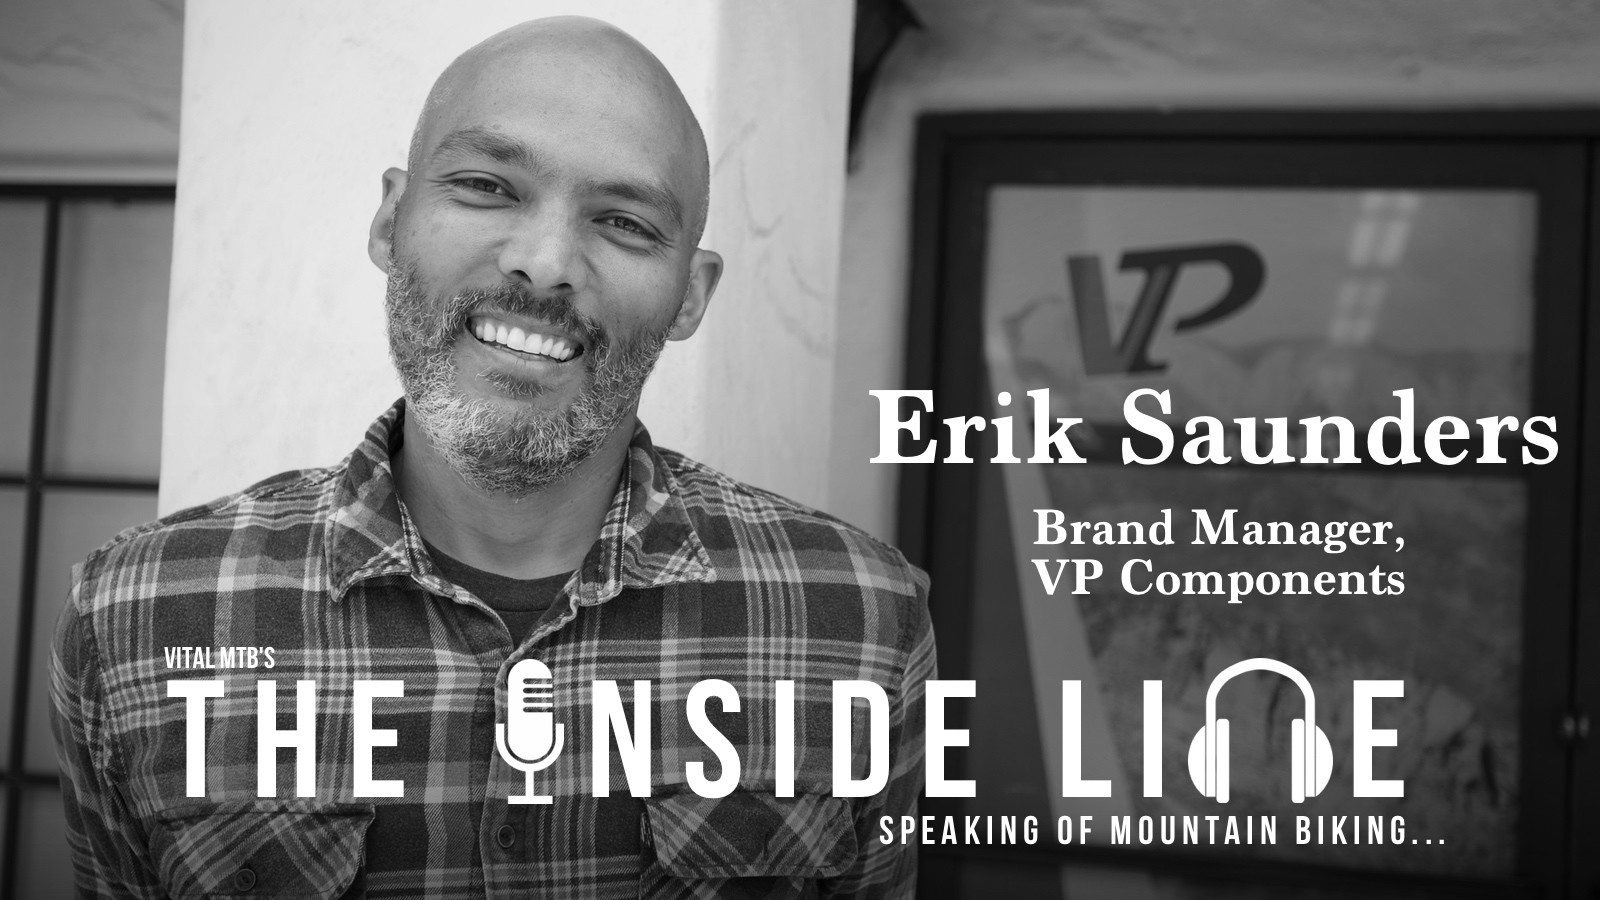 The Inside Line Podcast - Erik Saunders, Brand Manager, VP Components